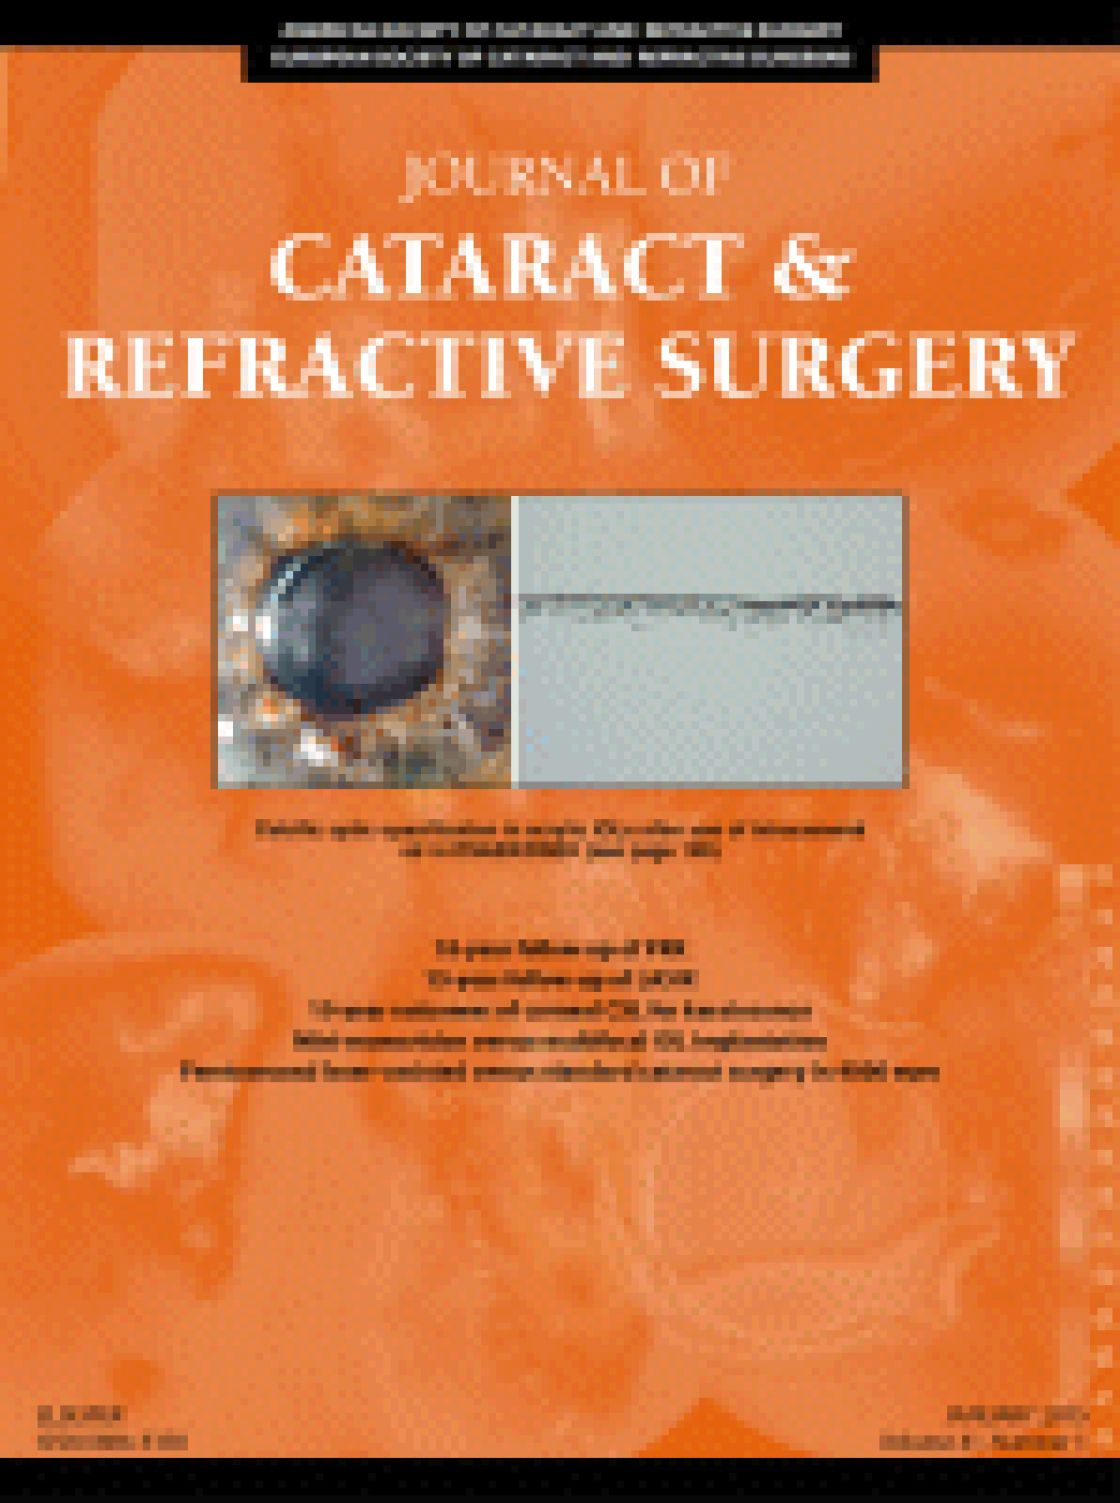 Comparison of anterior segment measurements with Scheimpflug/Placido photography-based topography system and IOLMaster partial coherence interferometry in patients with cataracts.